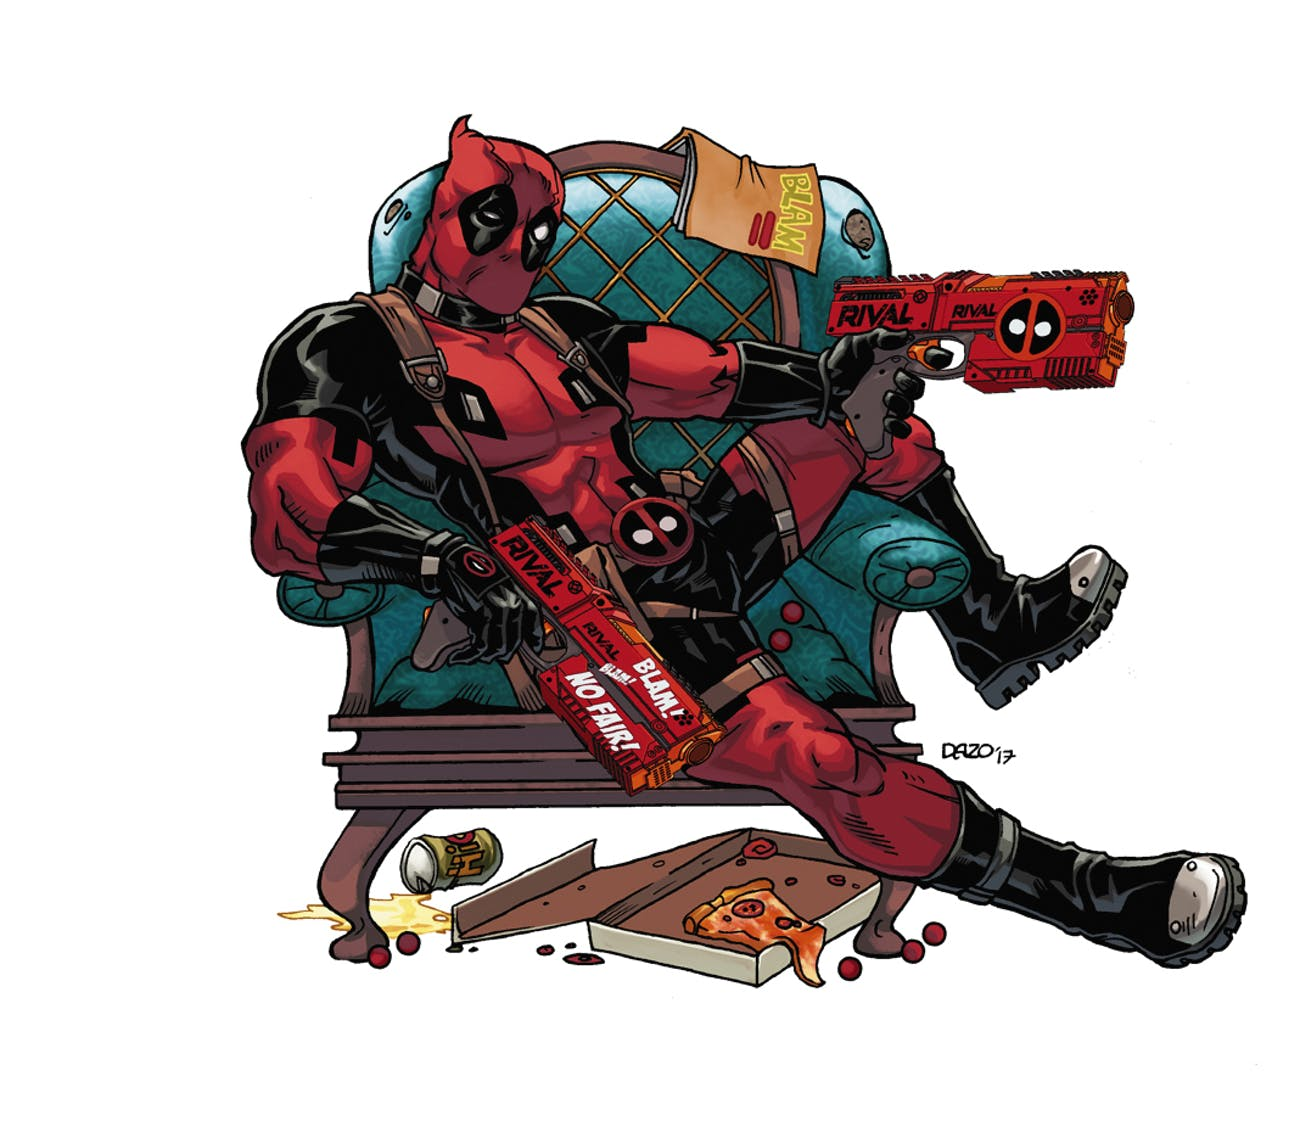 Deadpool likes pizza, beer, and Nerf guns that say Rival on them.